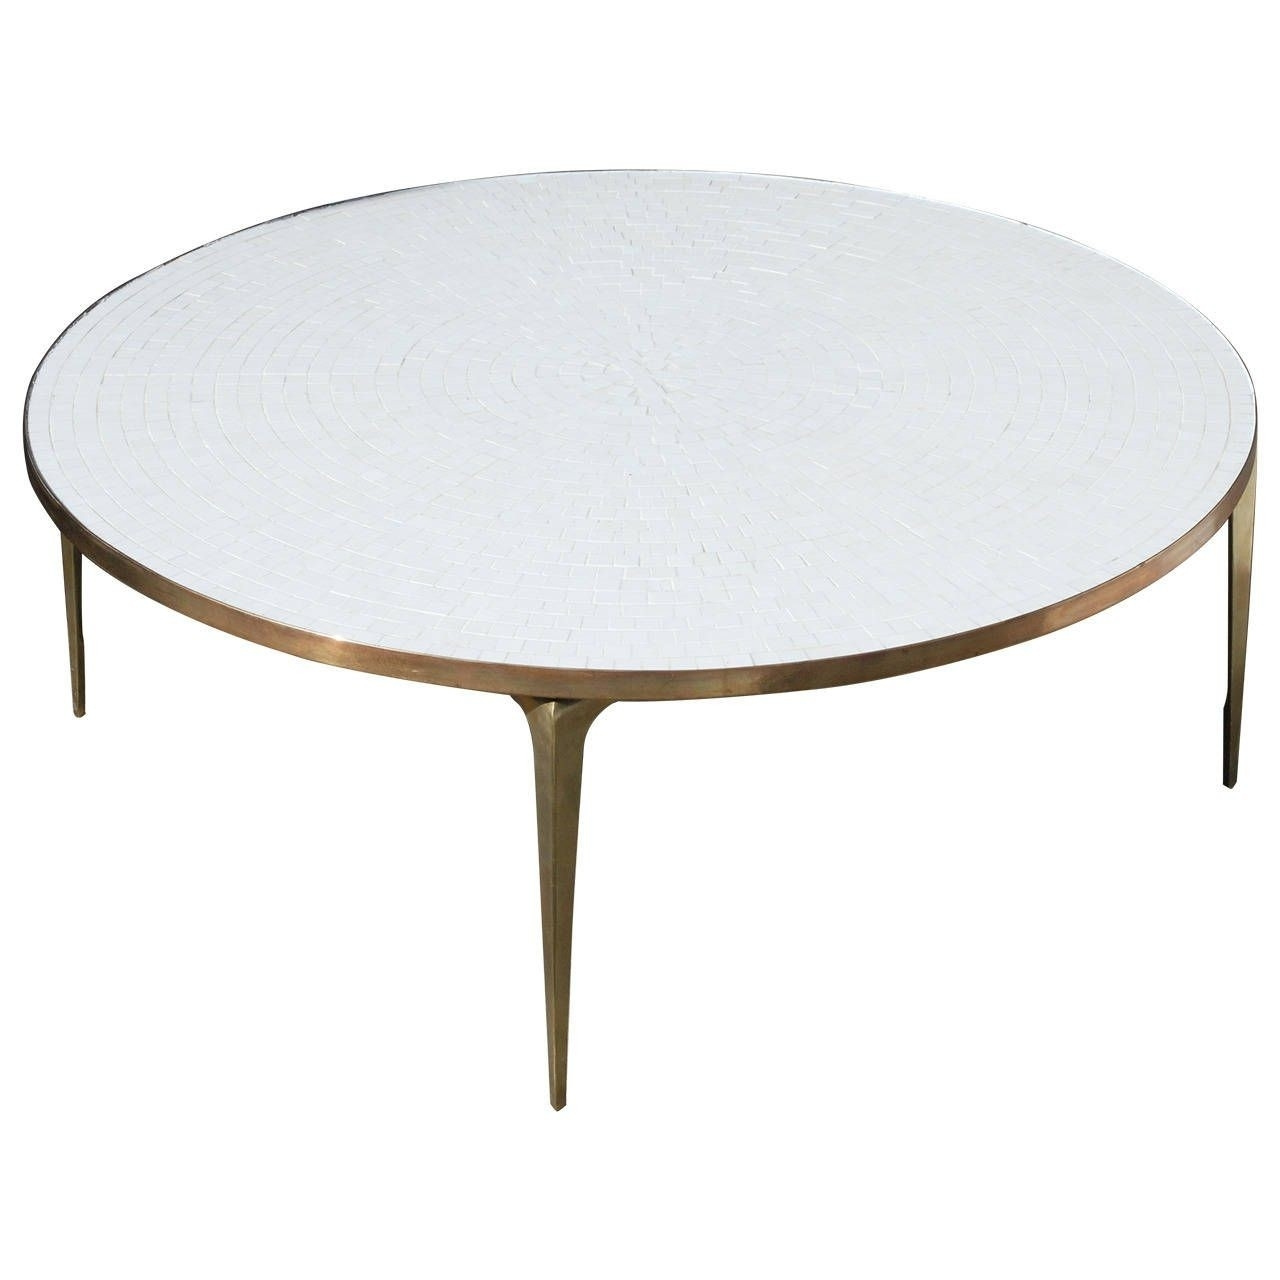 Round Brass Coffee Tables Table Side Geometric Antique Base For Inside Smart Round Marble Brass Coffee Tables (View 25 of 30)